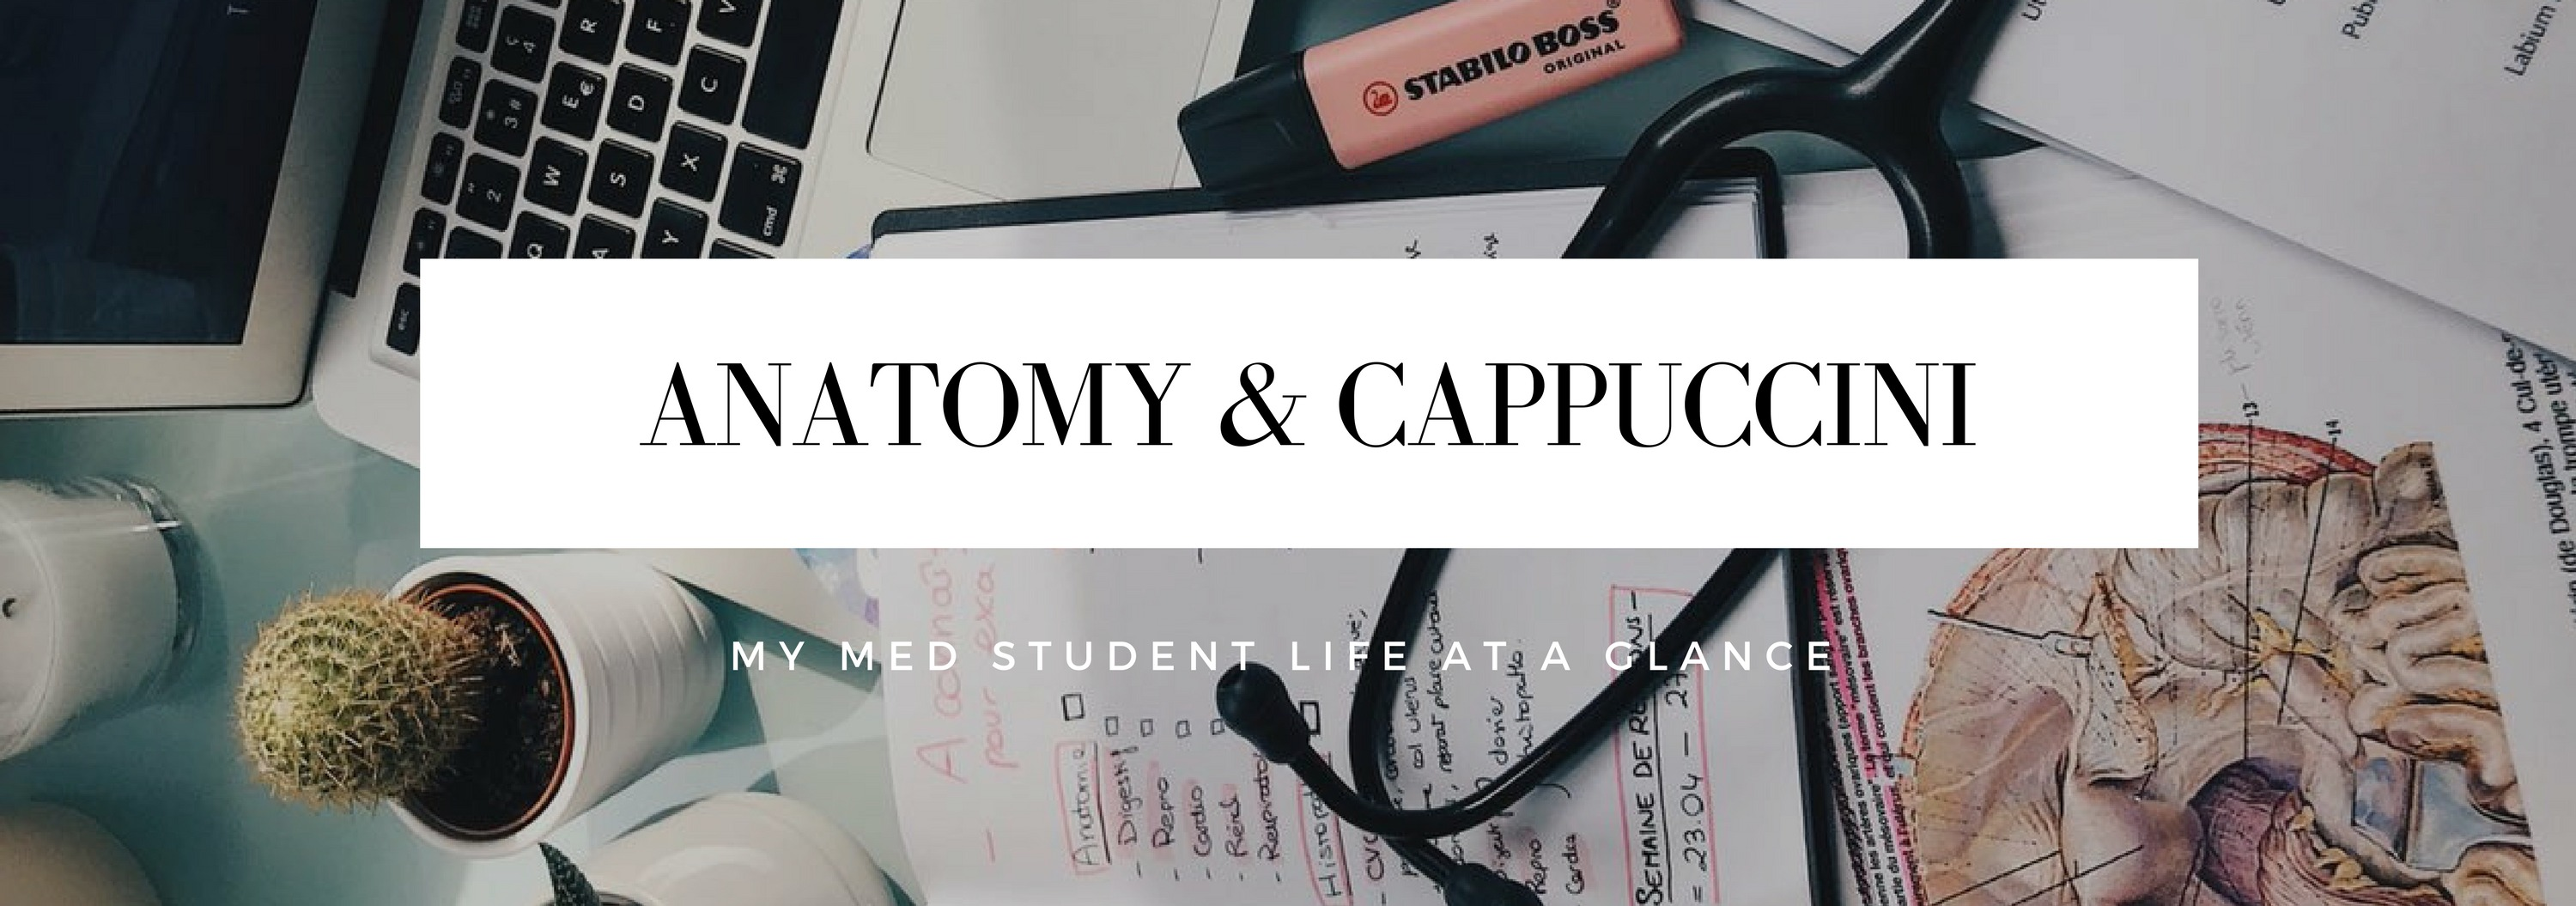 MY study tips!!! - Anatomy & Cappuccini